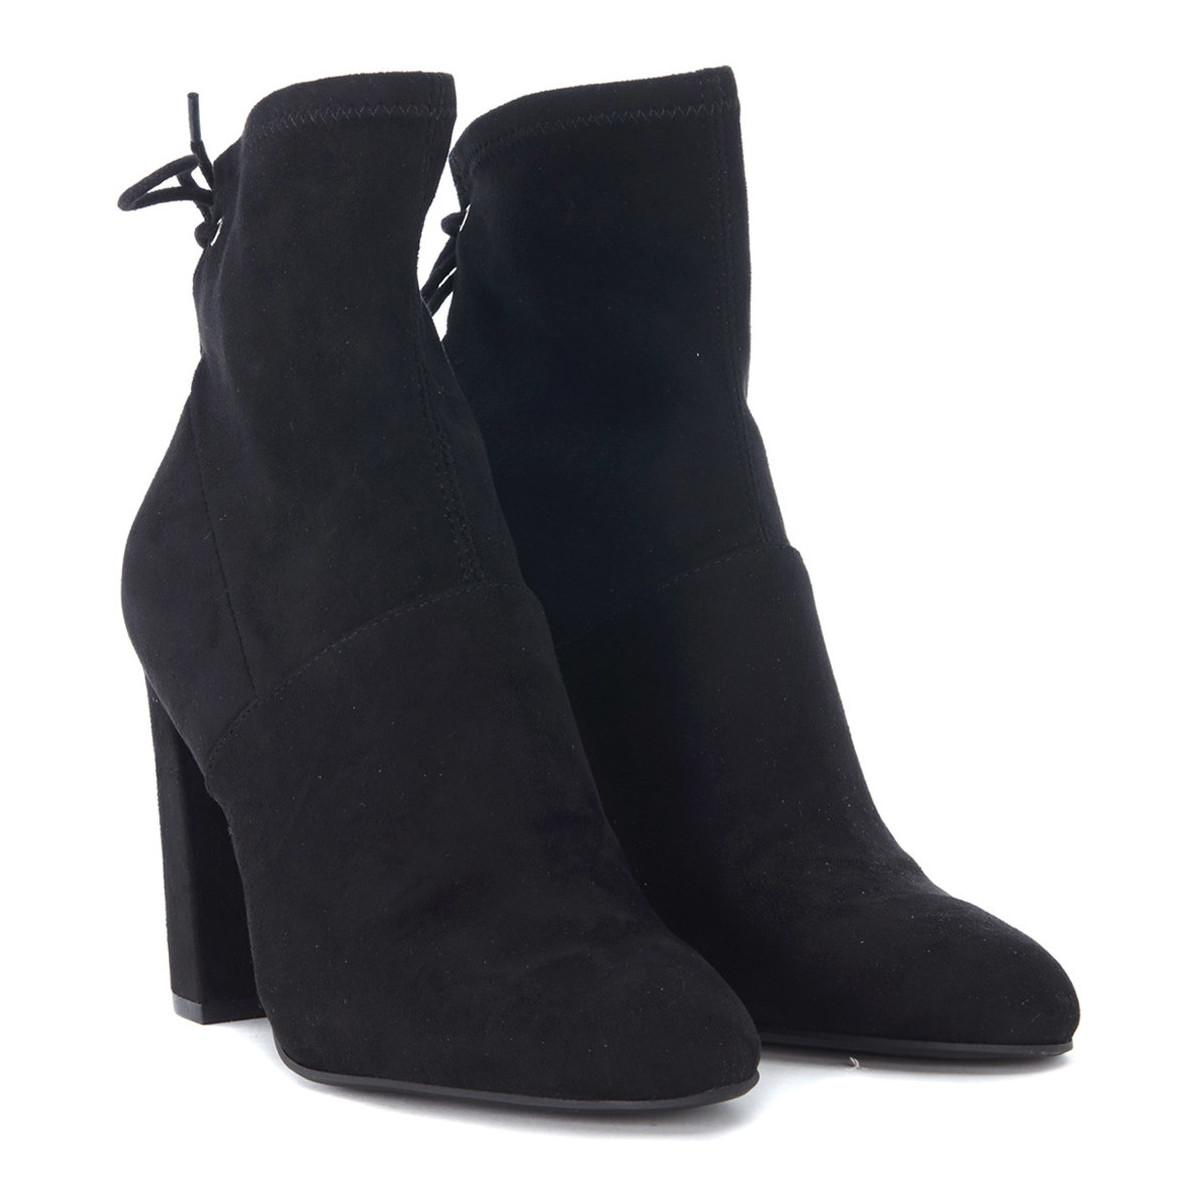 Steve Madden Tronchetto Enact In Pelle Scamosciata Nera Women's Low Boots In Black